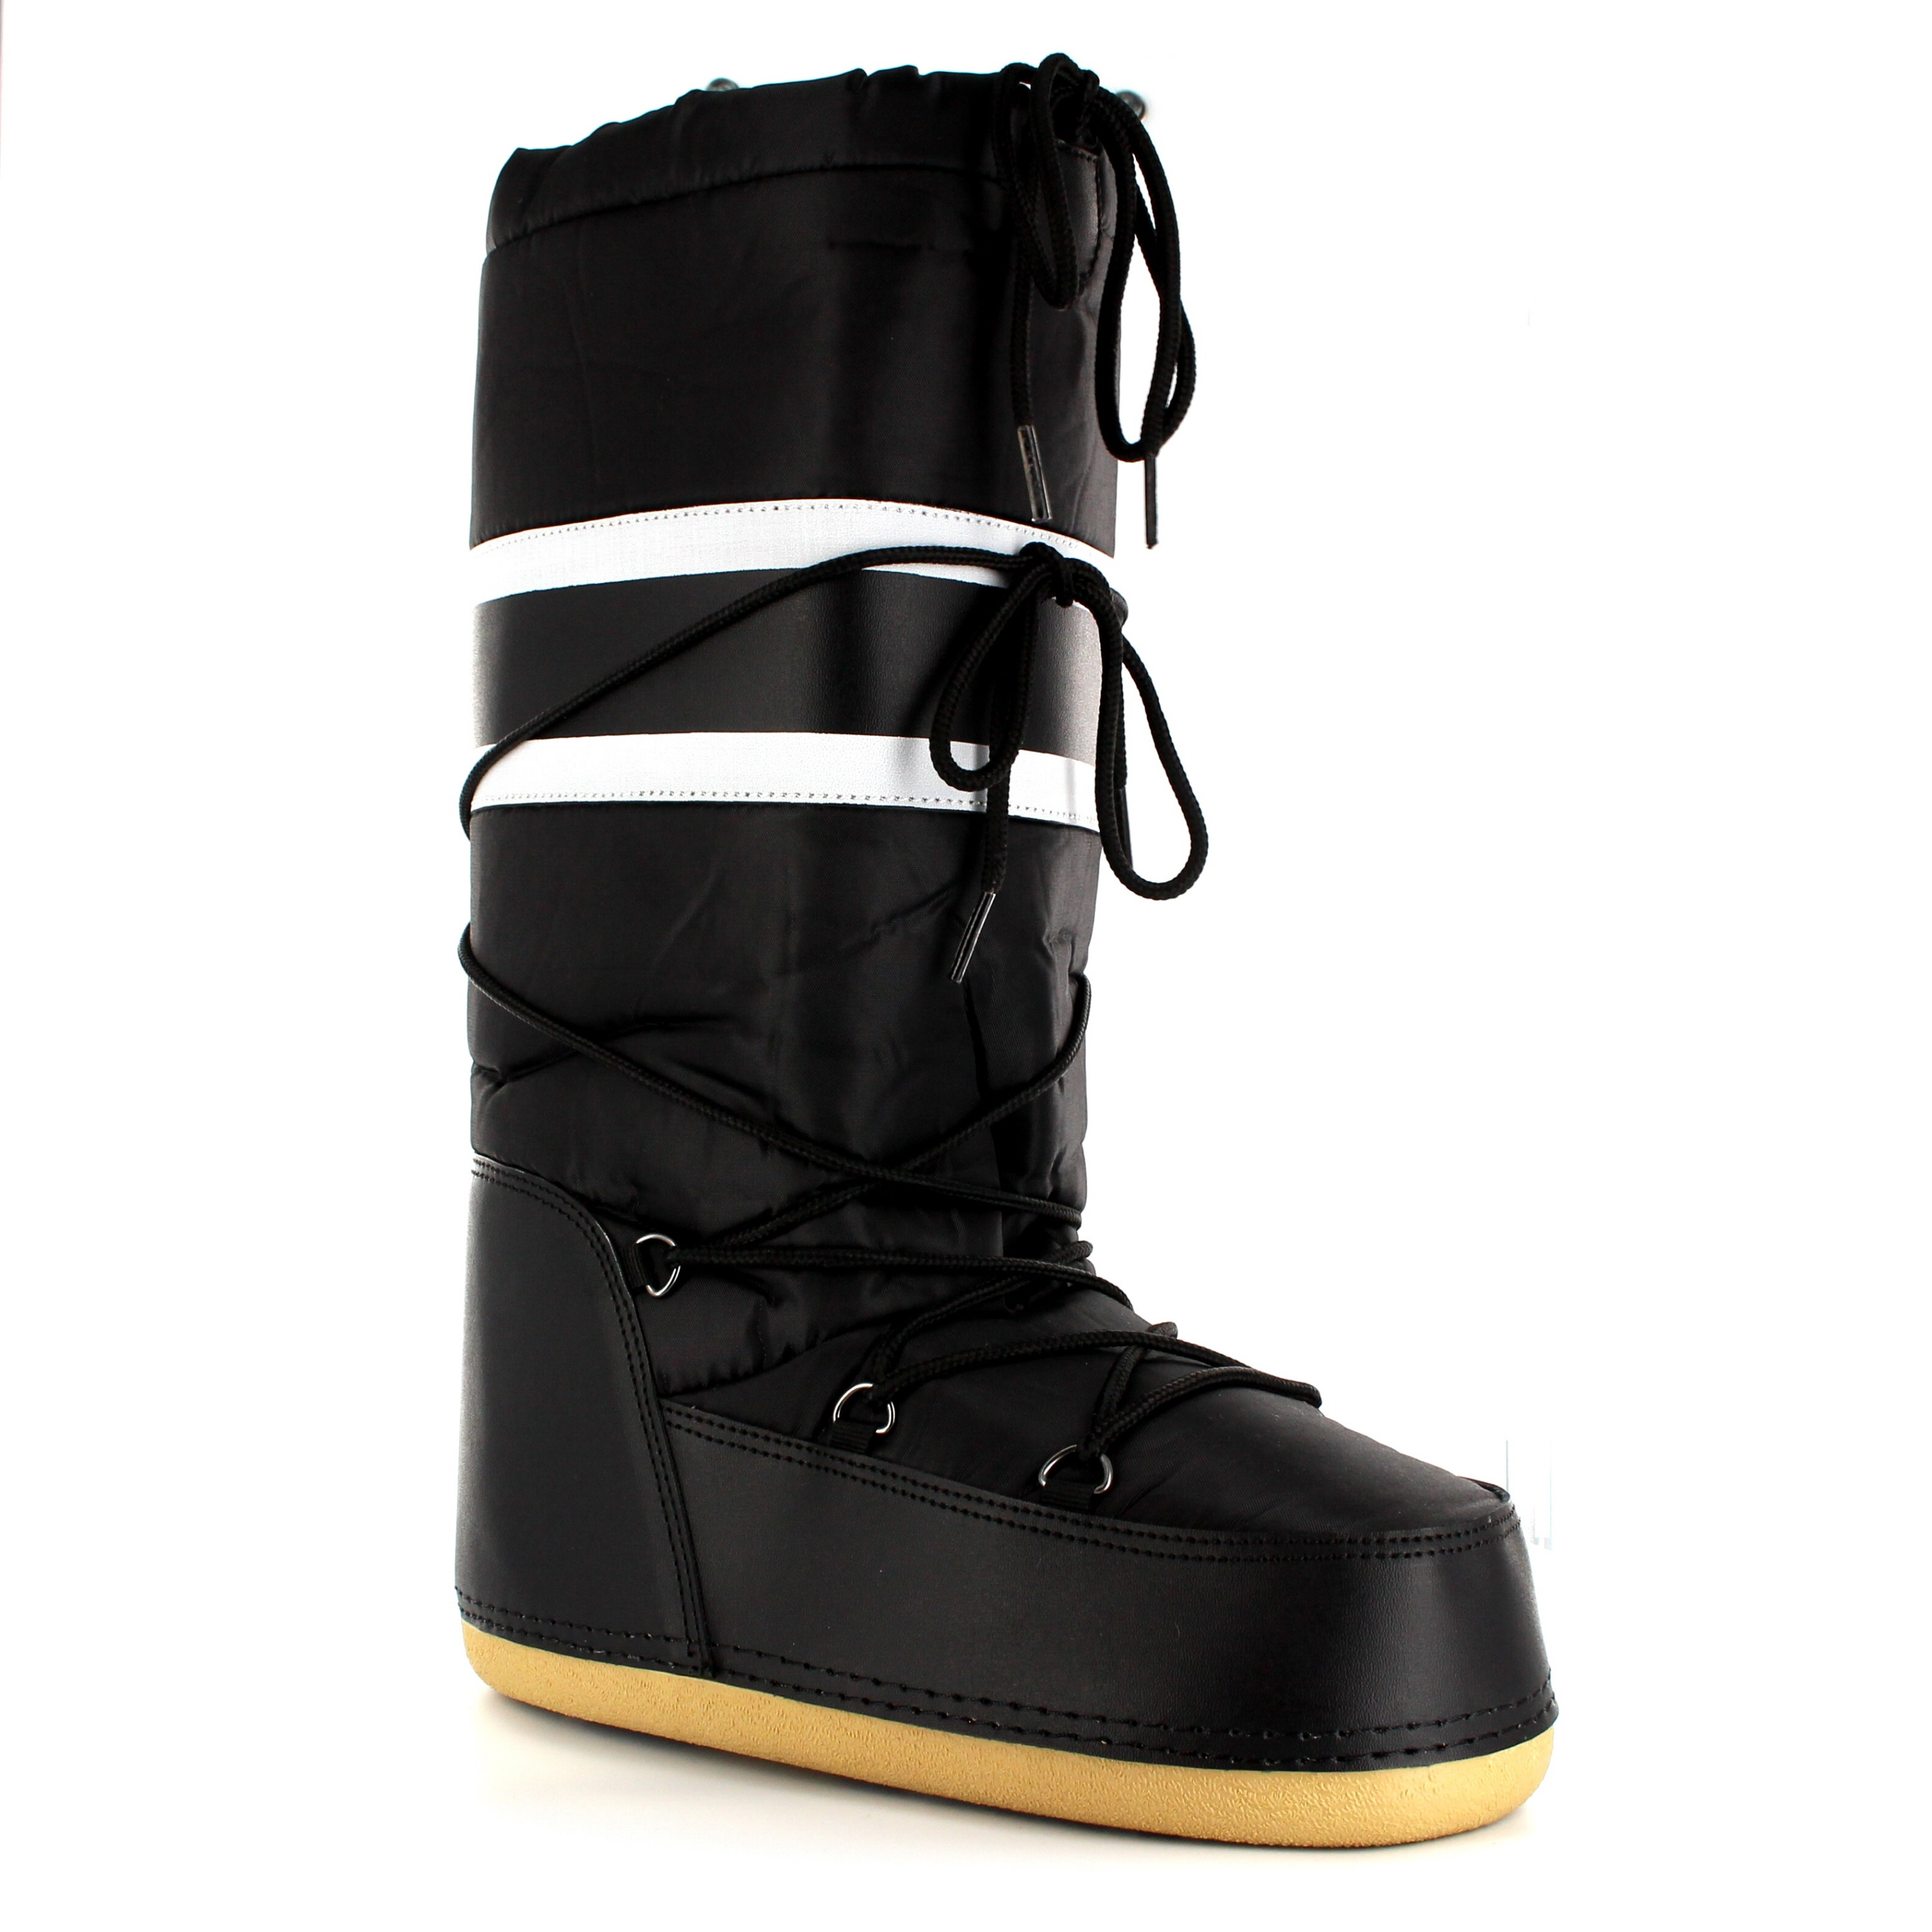 New Womens Snow Boot Nylon Tall Winter Fur Lined Snow Warm Quilted Rain